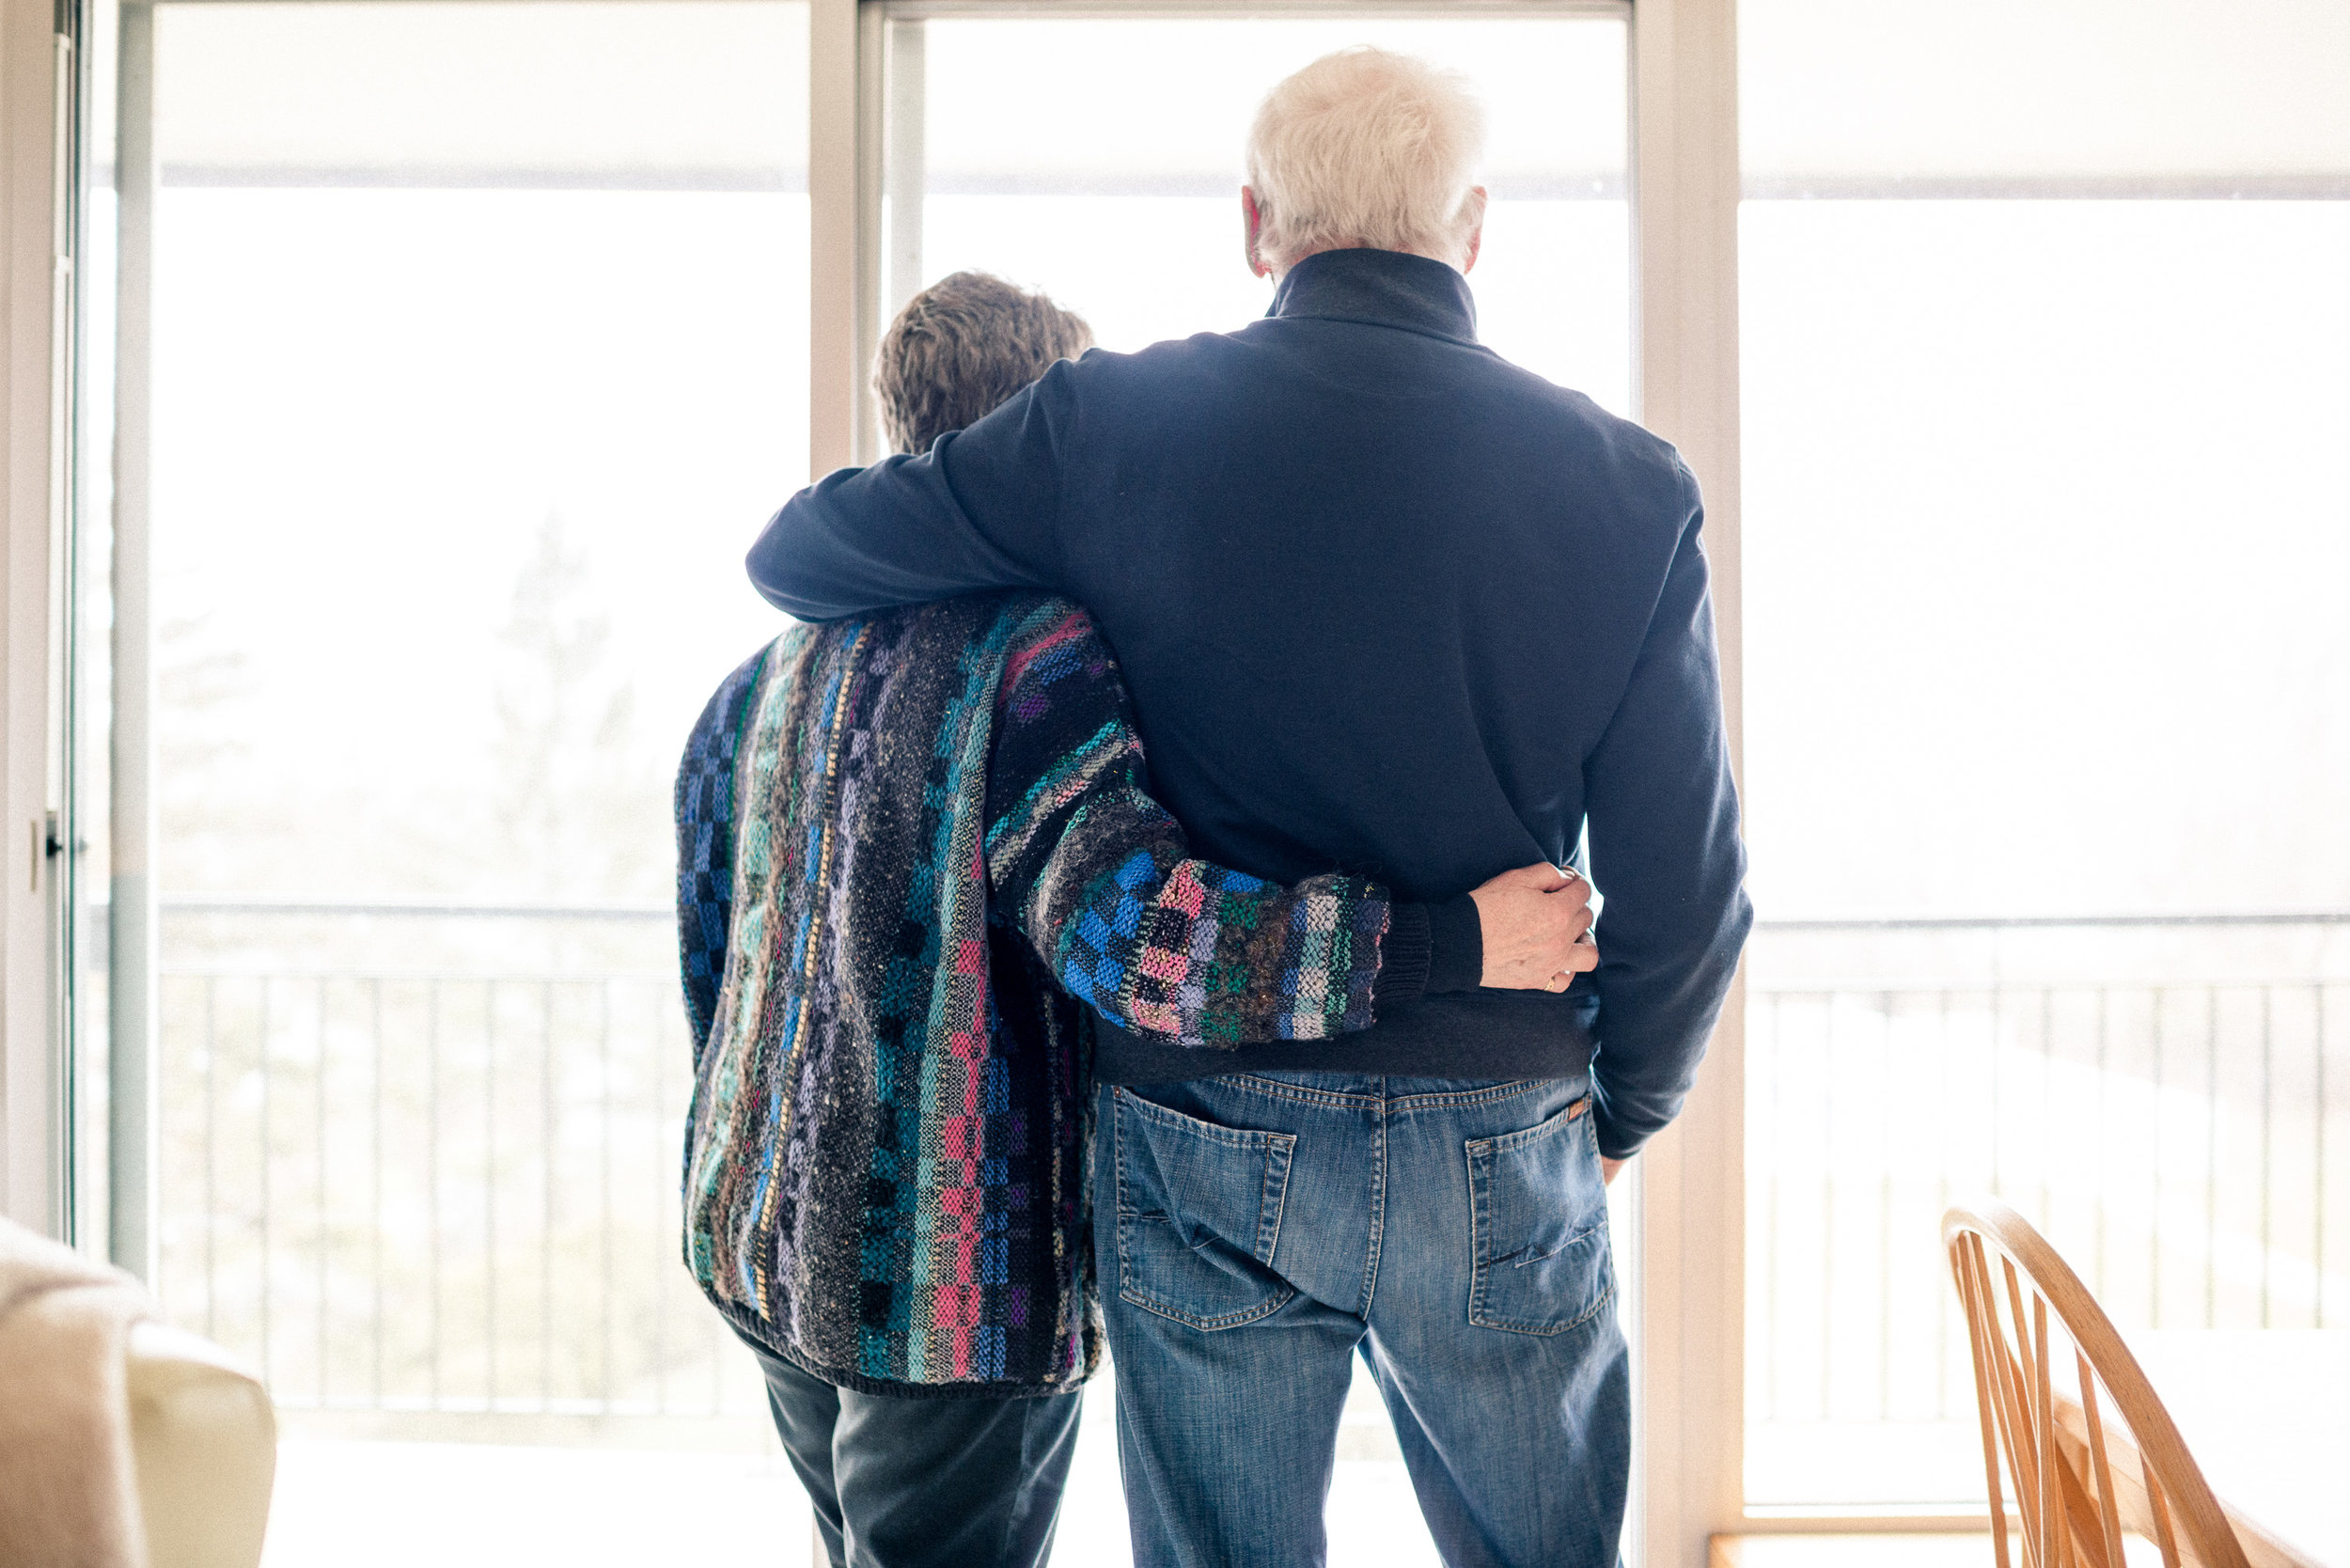 After 53 years together, they are still in love. Here they are, looking out toward the lake through the window of their condo, looking toward the bright future.